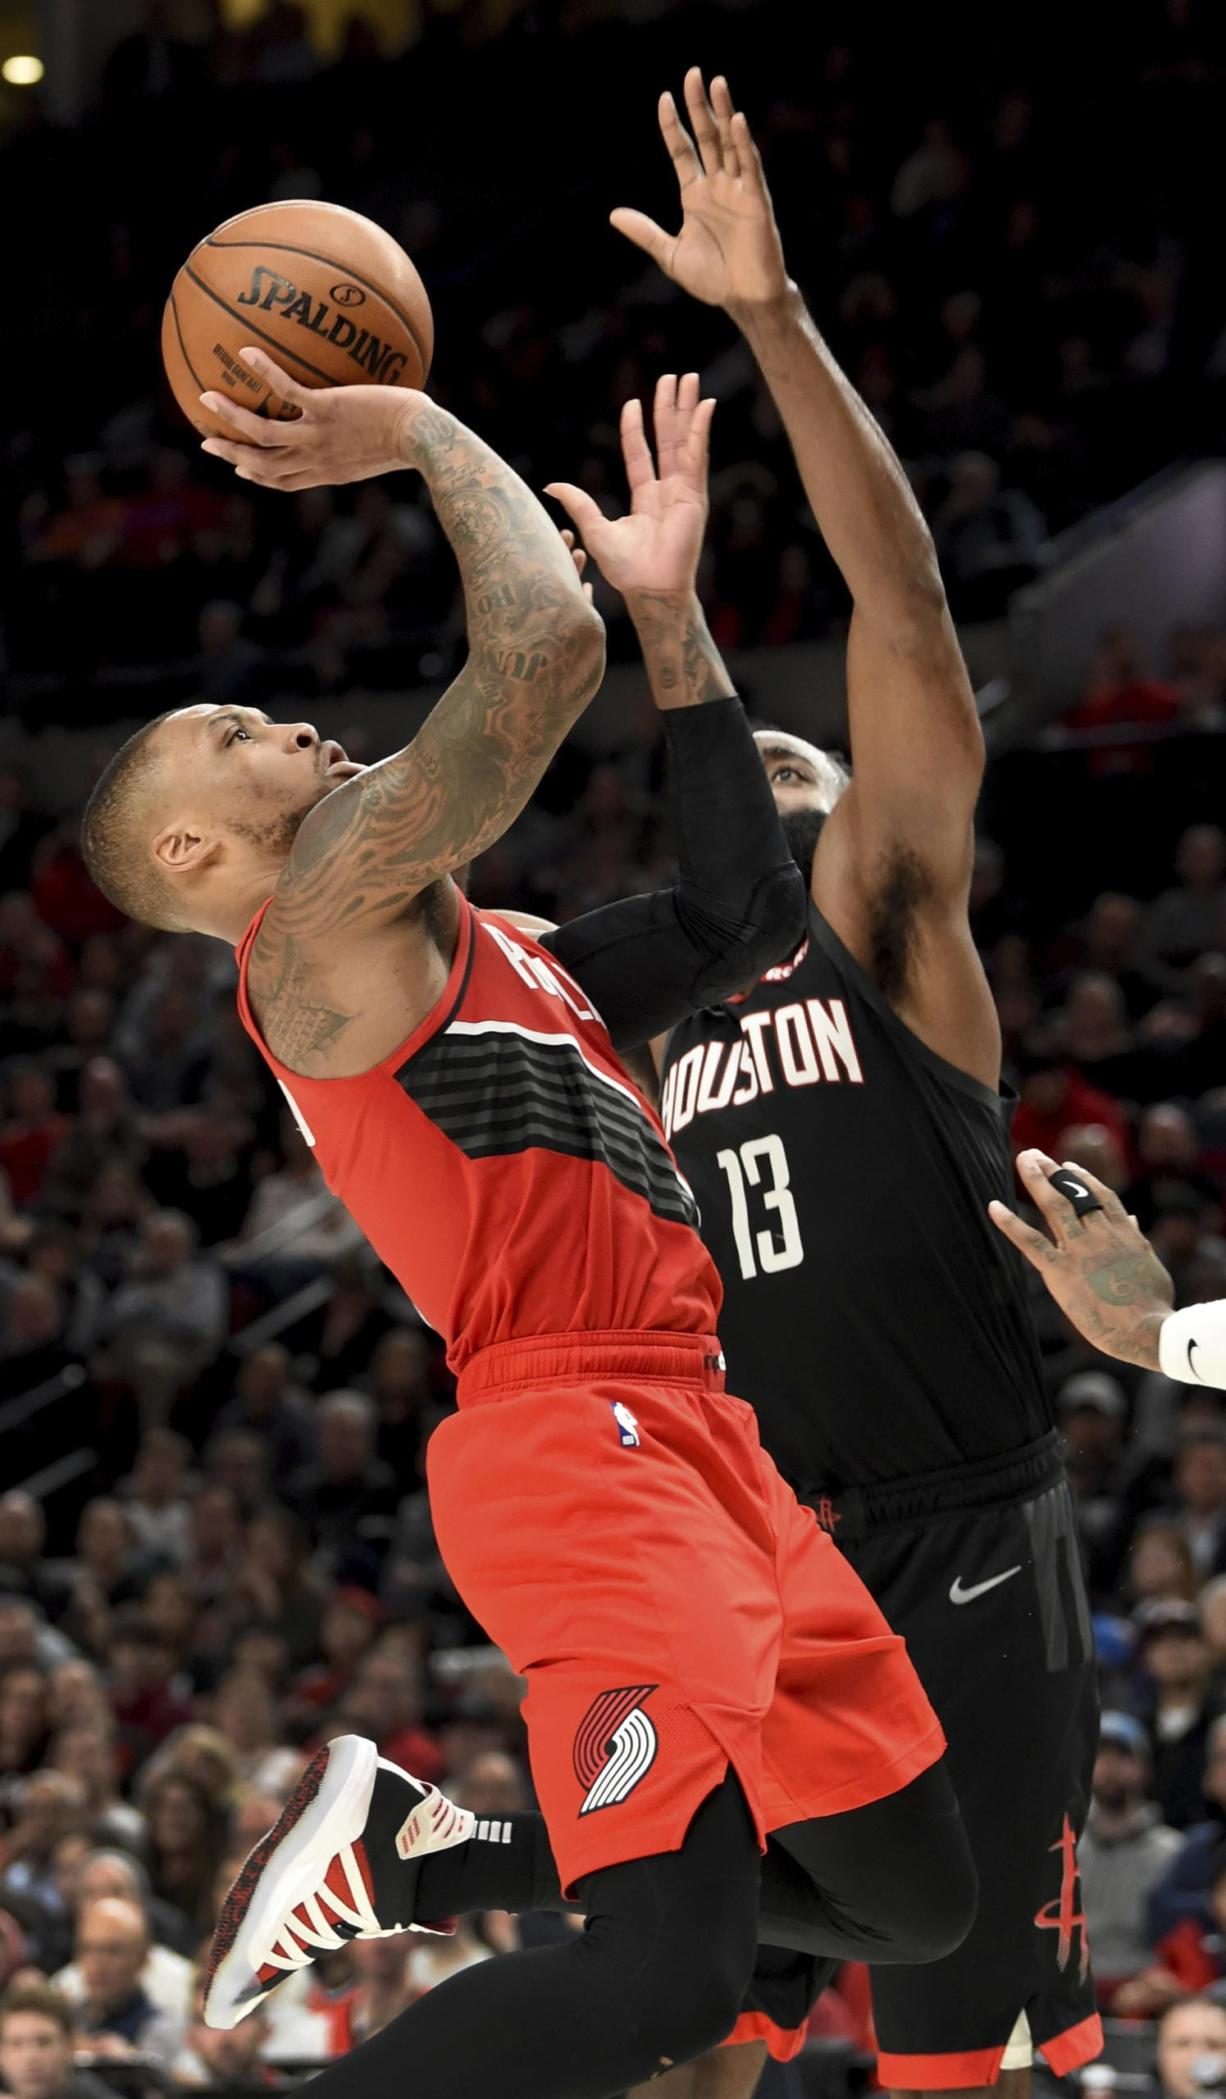 Portland Trail Blazers guard Damian Lillard, left, drives to the basket as Houston Rockets guard James Harden defends during the second half of an NBA basketball game in Portland, Ore., Wednesday, Jan. 29, 2020. The Blazers won 125-112. (AP Photo/Steve Dykes)